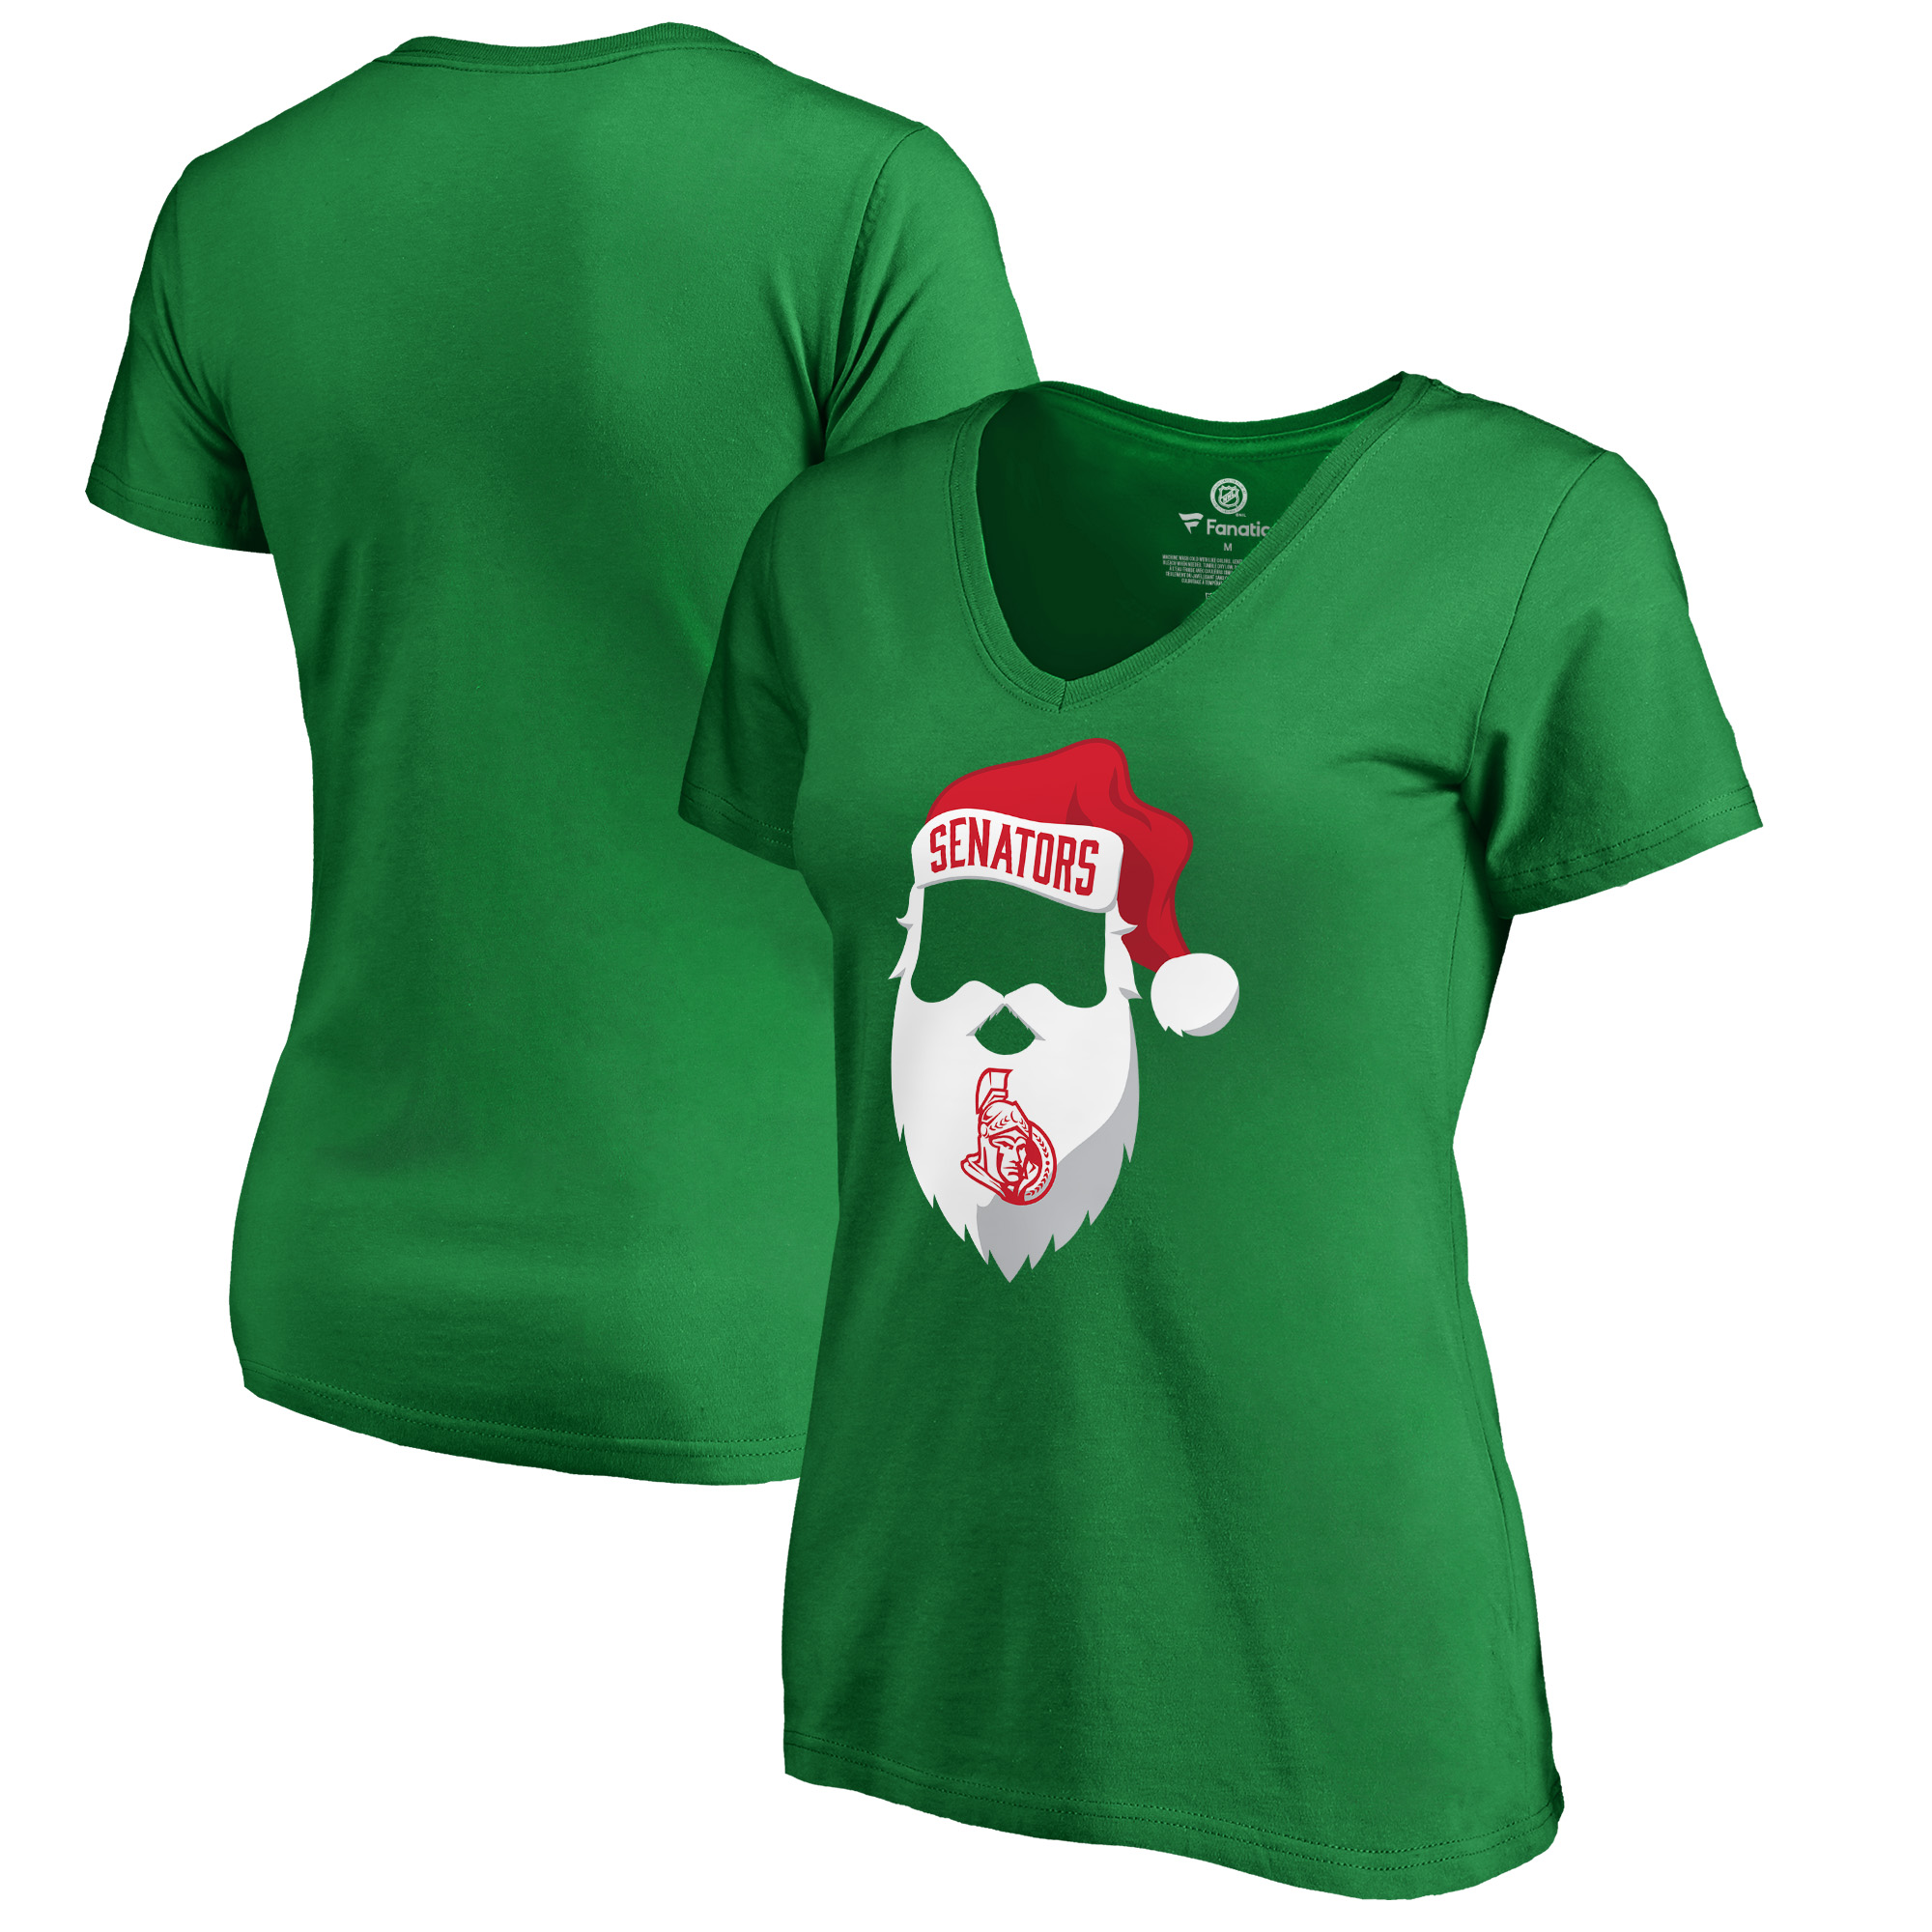 Ottawa Senators Fanatics Branded Women's Jolly Slim Fit V-Neck T-Shirt - Kelly Green